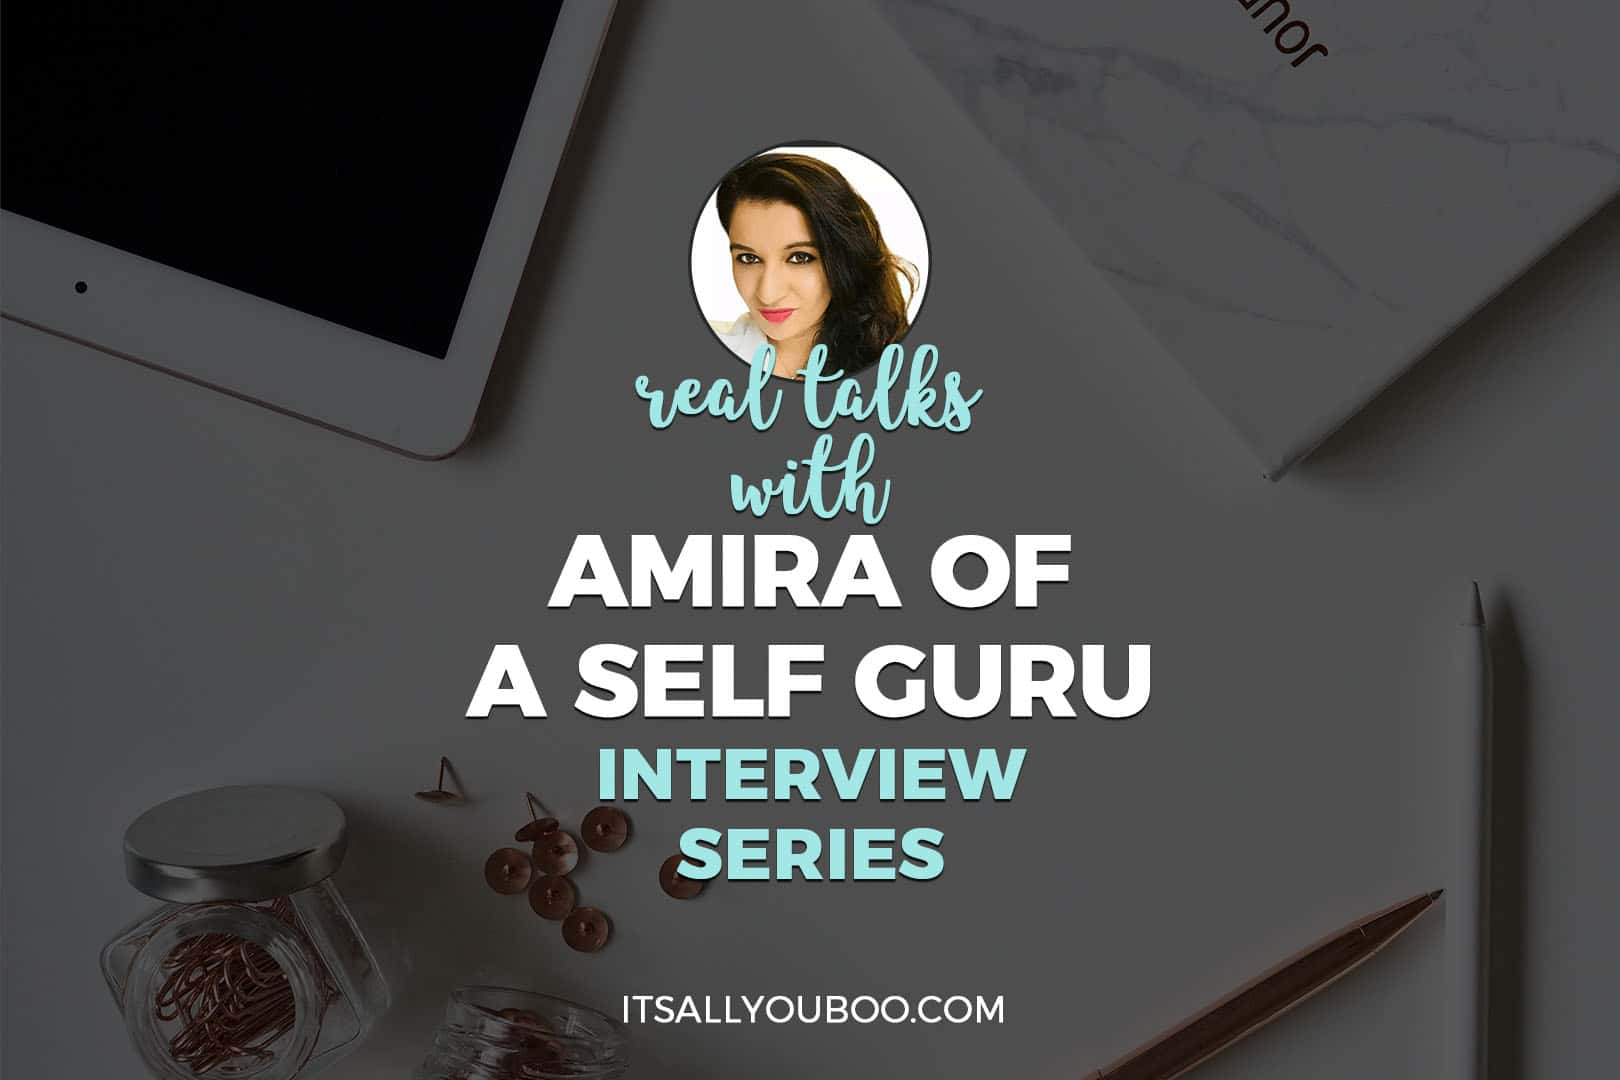 Real Talks with Amira of A Self Guru